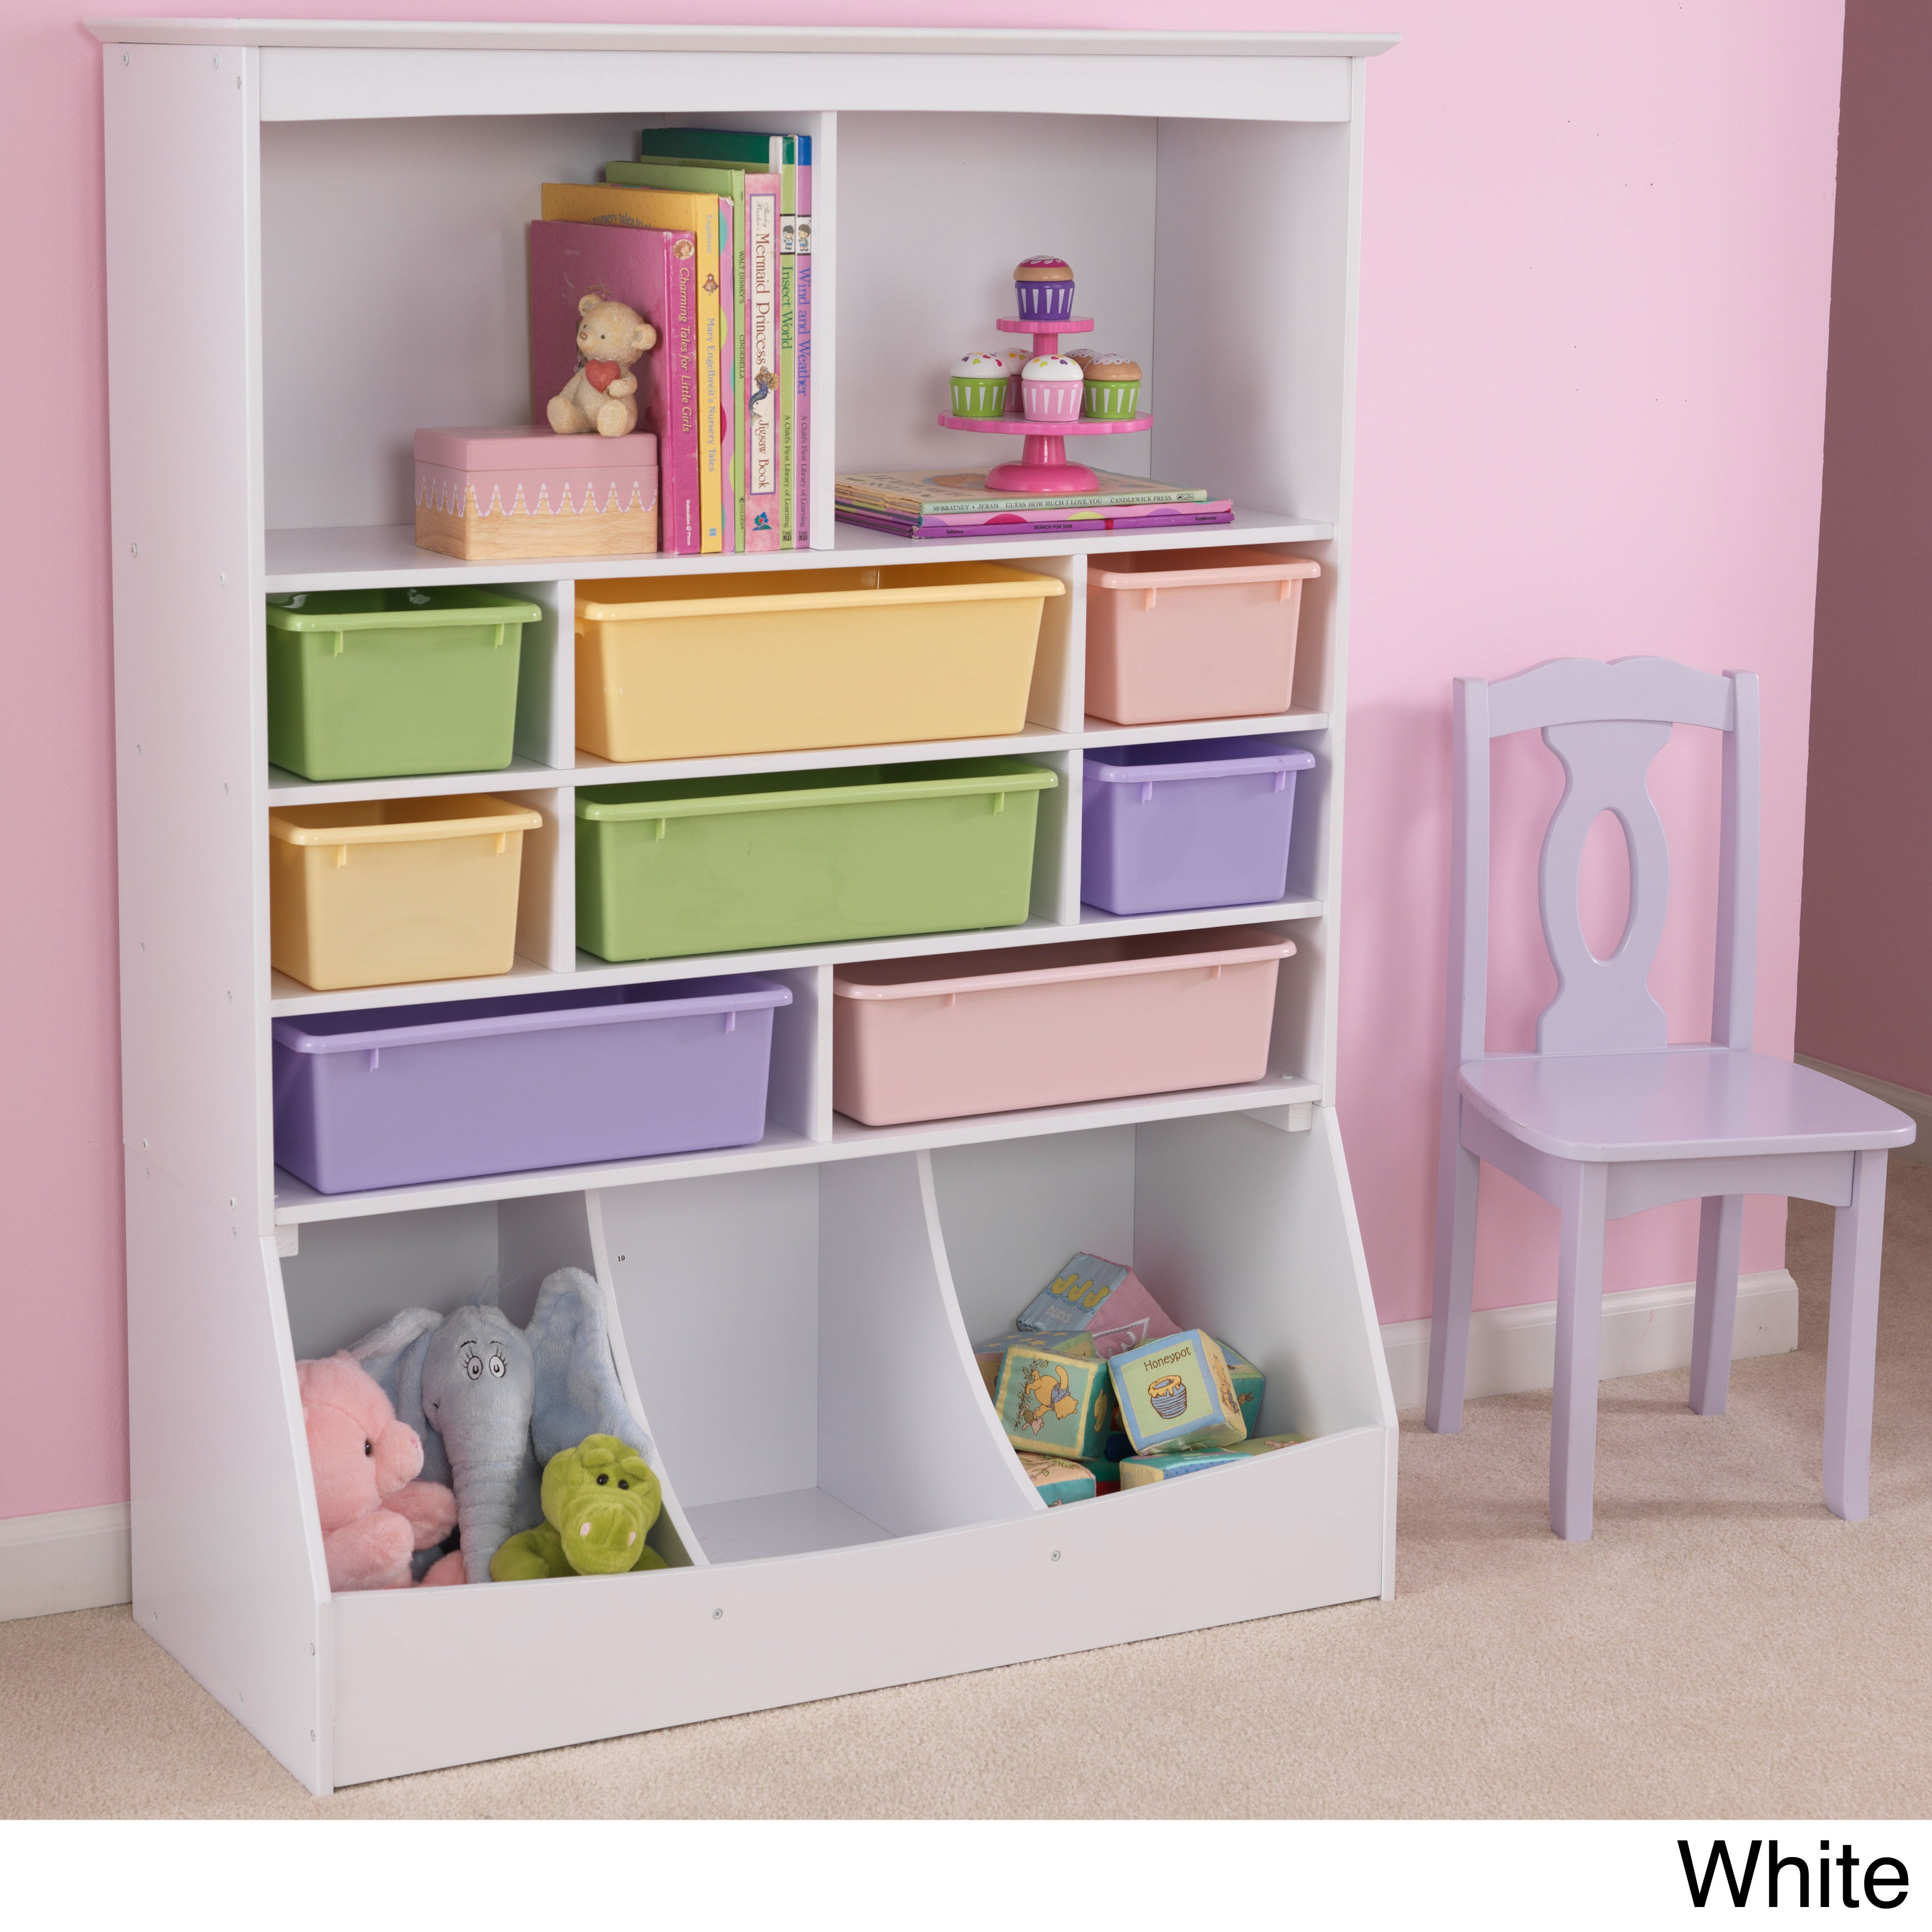 Wall Storage Units Kidkraft Kid's Wall Storage Unit  Free Shipping Today  Overstock